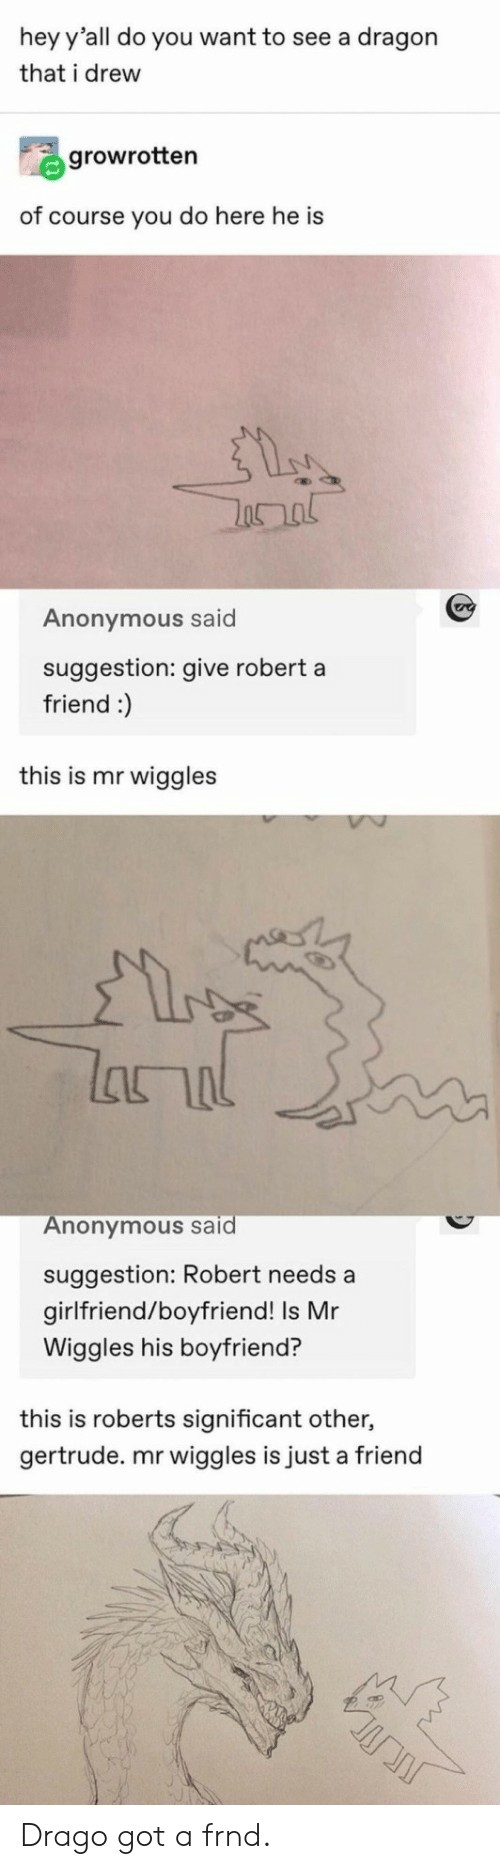 just a friend: hey y'all do you want to see a dragon  that i drew  growrotten  of course you do here he is  Anonymous said  suggestion: give robert a  friend :)  this is mr wiggles  lanal  Anonymous said  suggestion: Robert needs a  girlfriend/boyfriend! Is Mr  Wiggles his boyfriend?  this is roberts significant other,  gertrude. mr wiggles is just a friend Drago got a frnd.